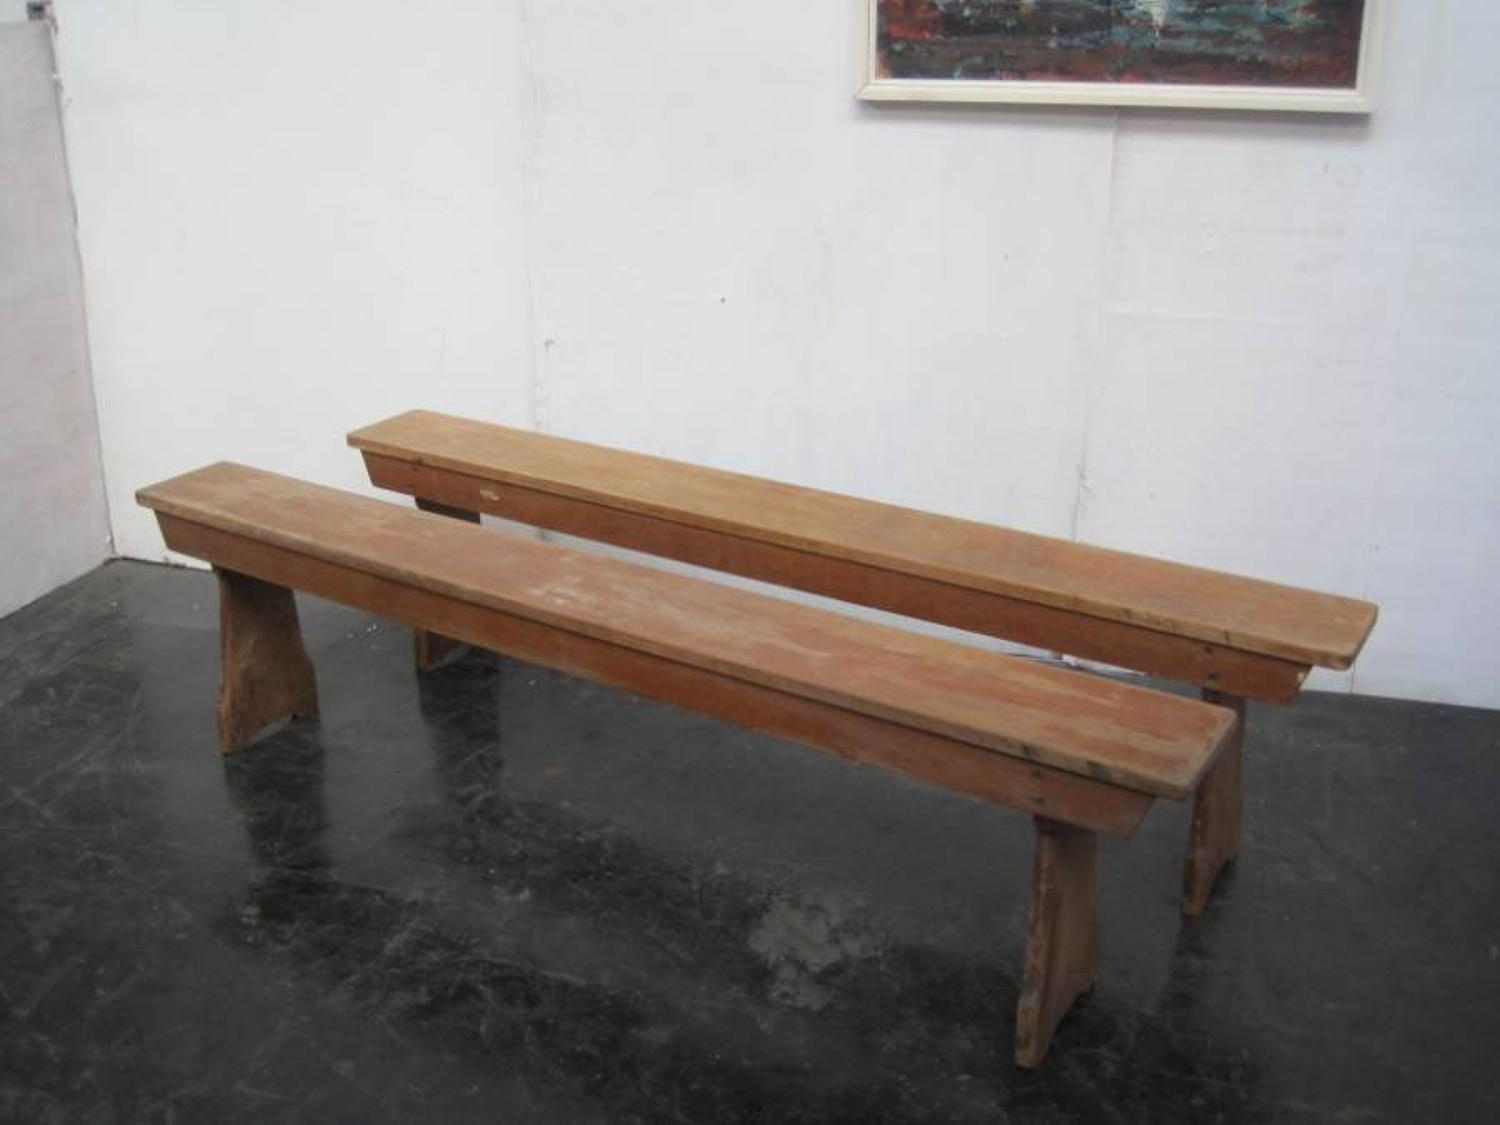 Vintage wooden school benches